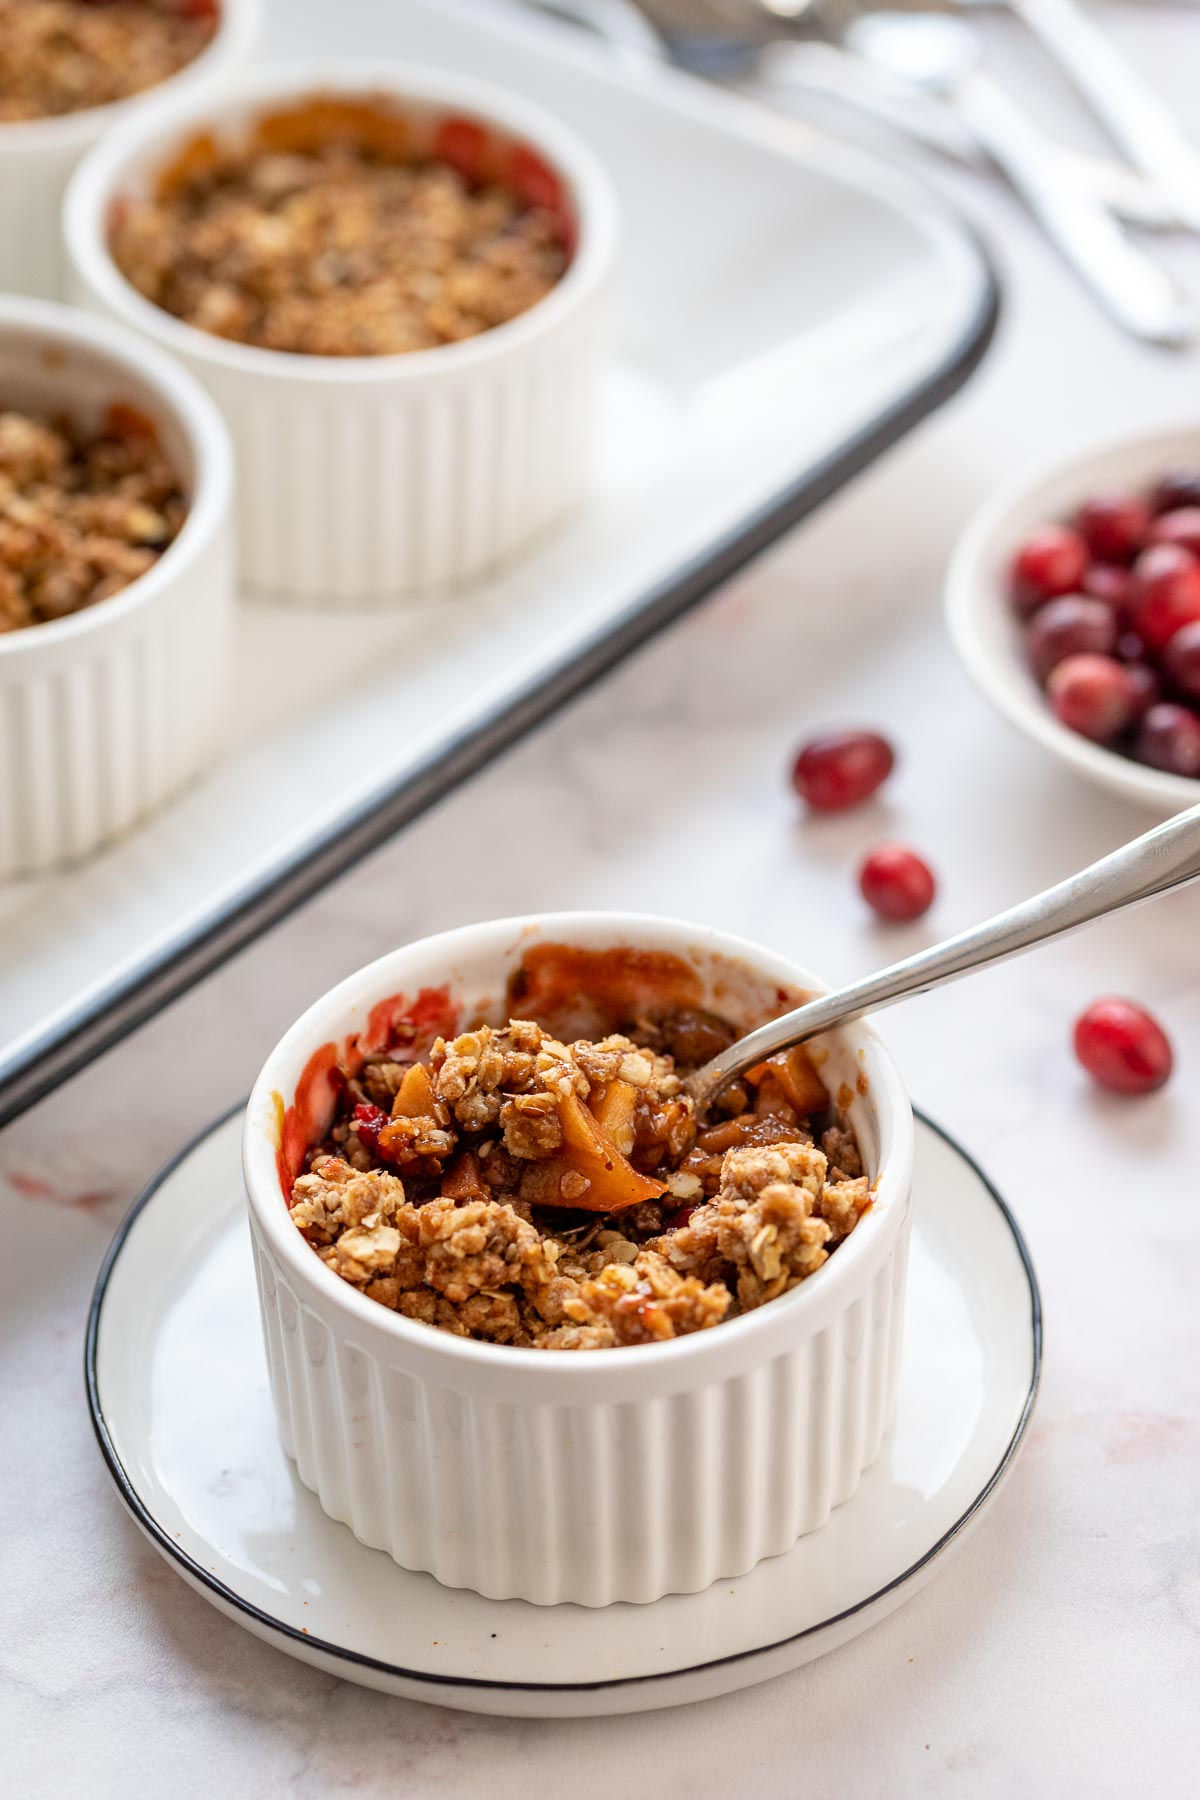 Apfel-Crumble mit Cranberries